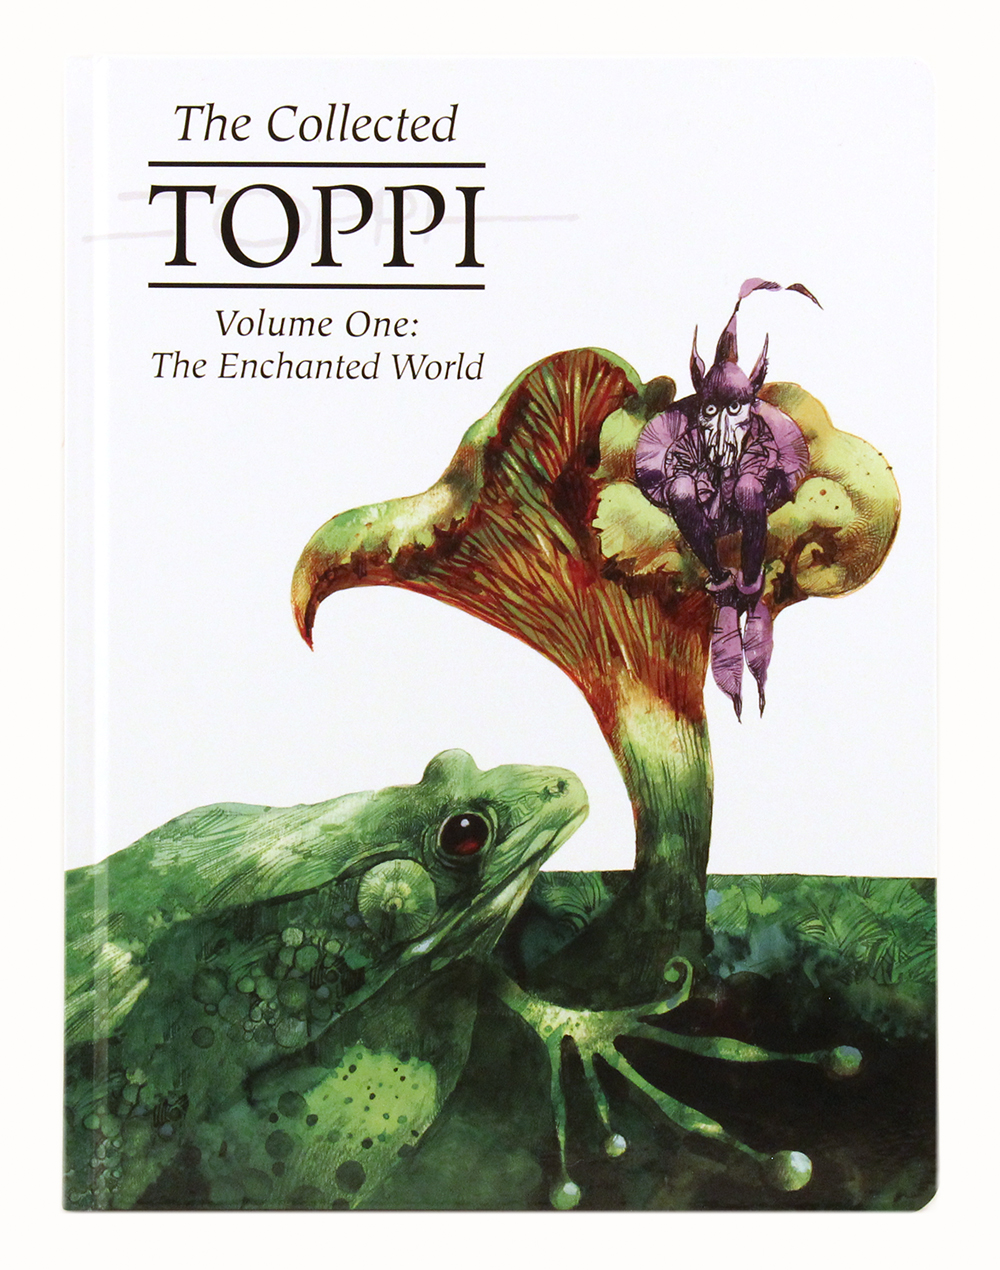 The Collected TOPPI Volume One: The Enchanted World